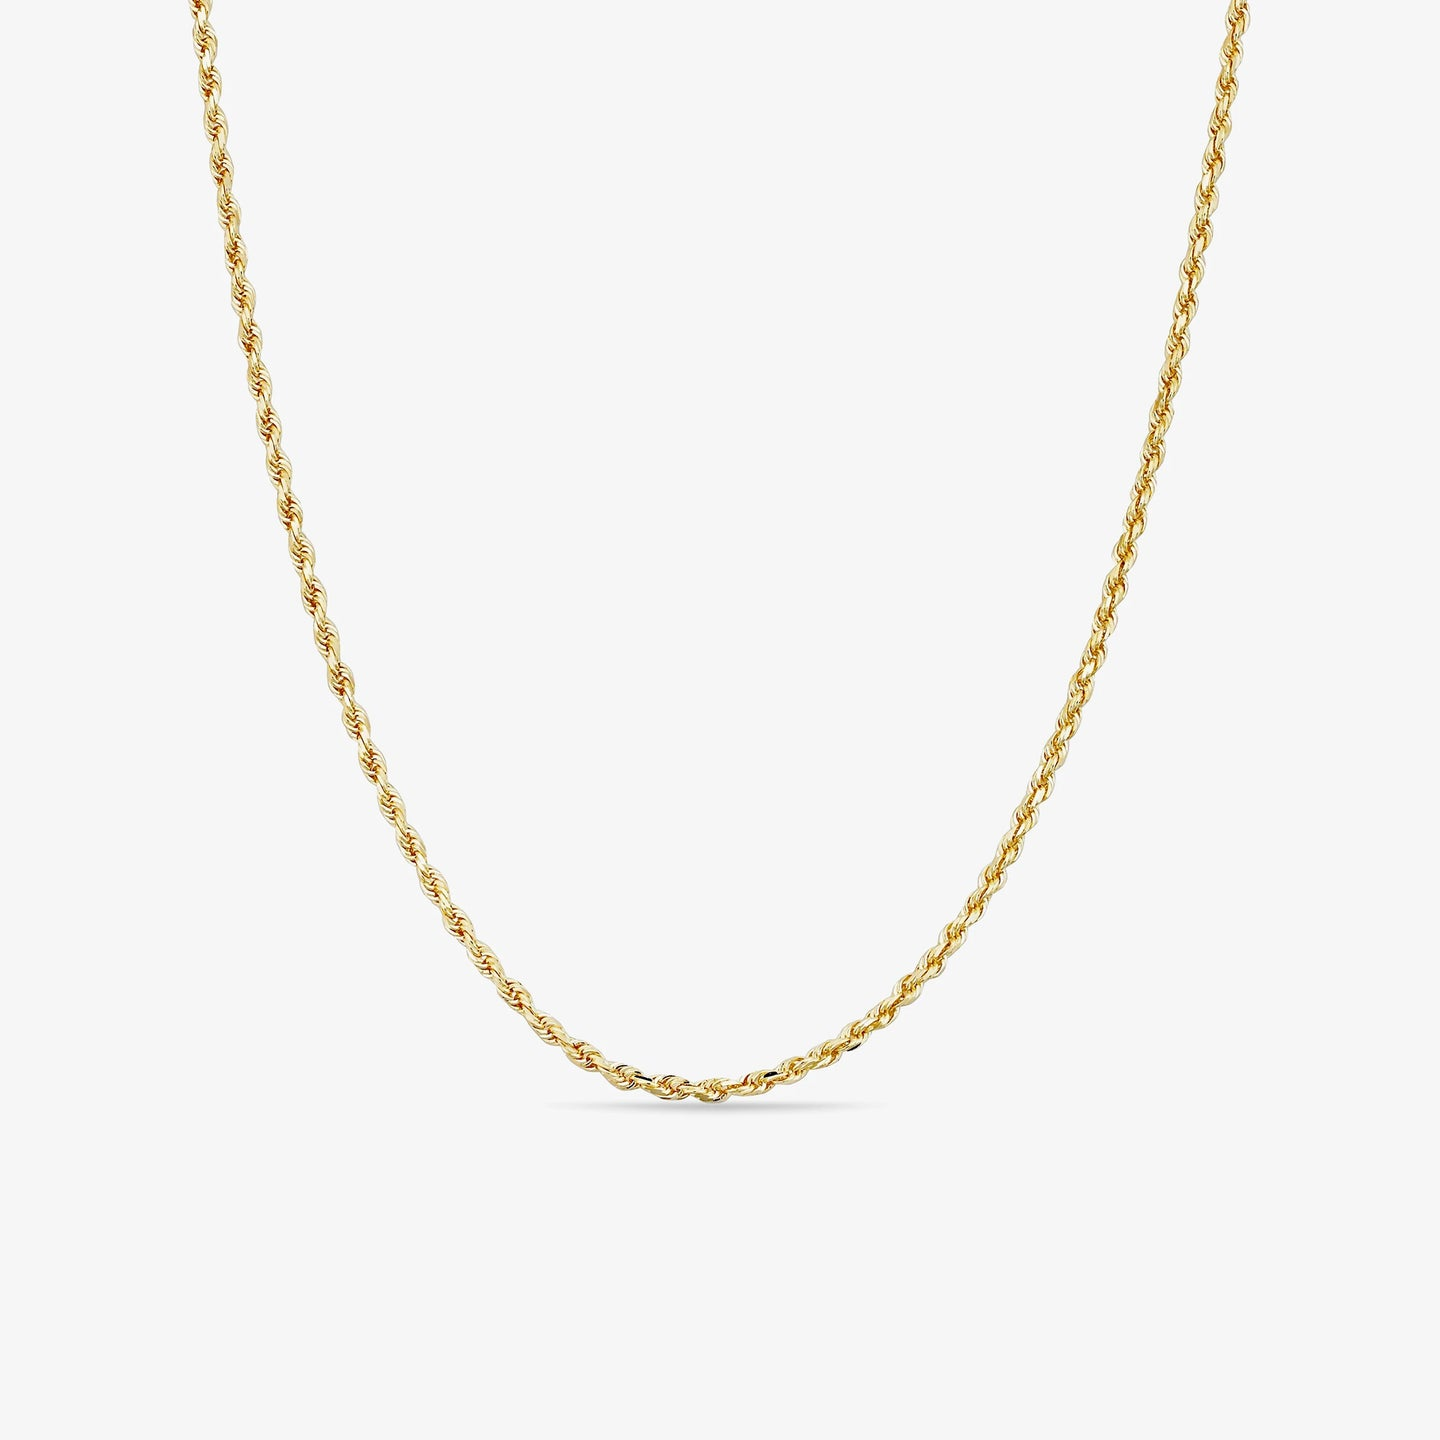 10k Yellow Gold Semi-Solid Rope Chain Necklace| 16